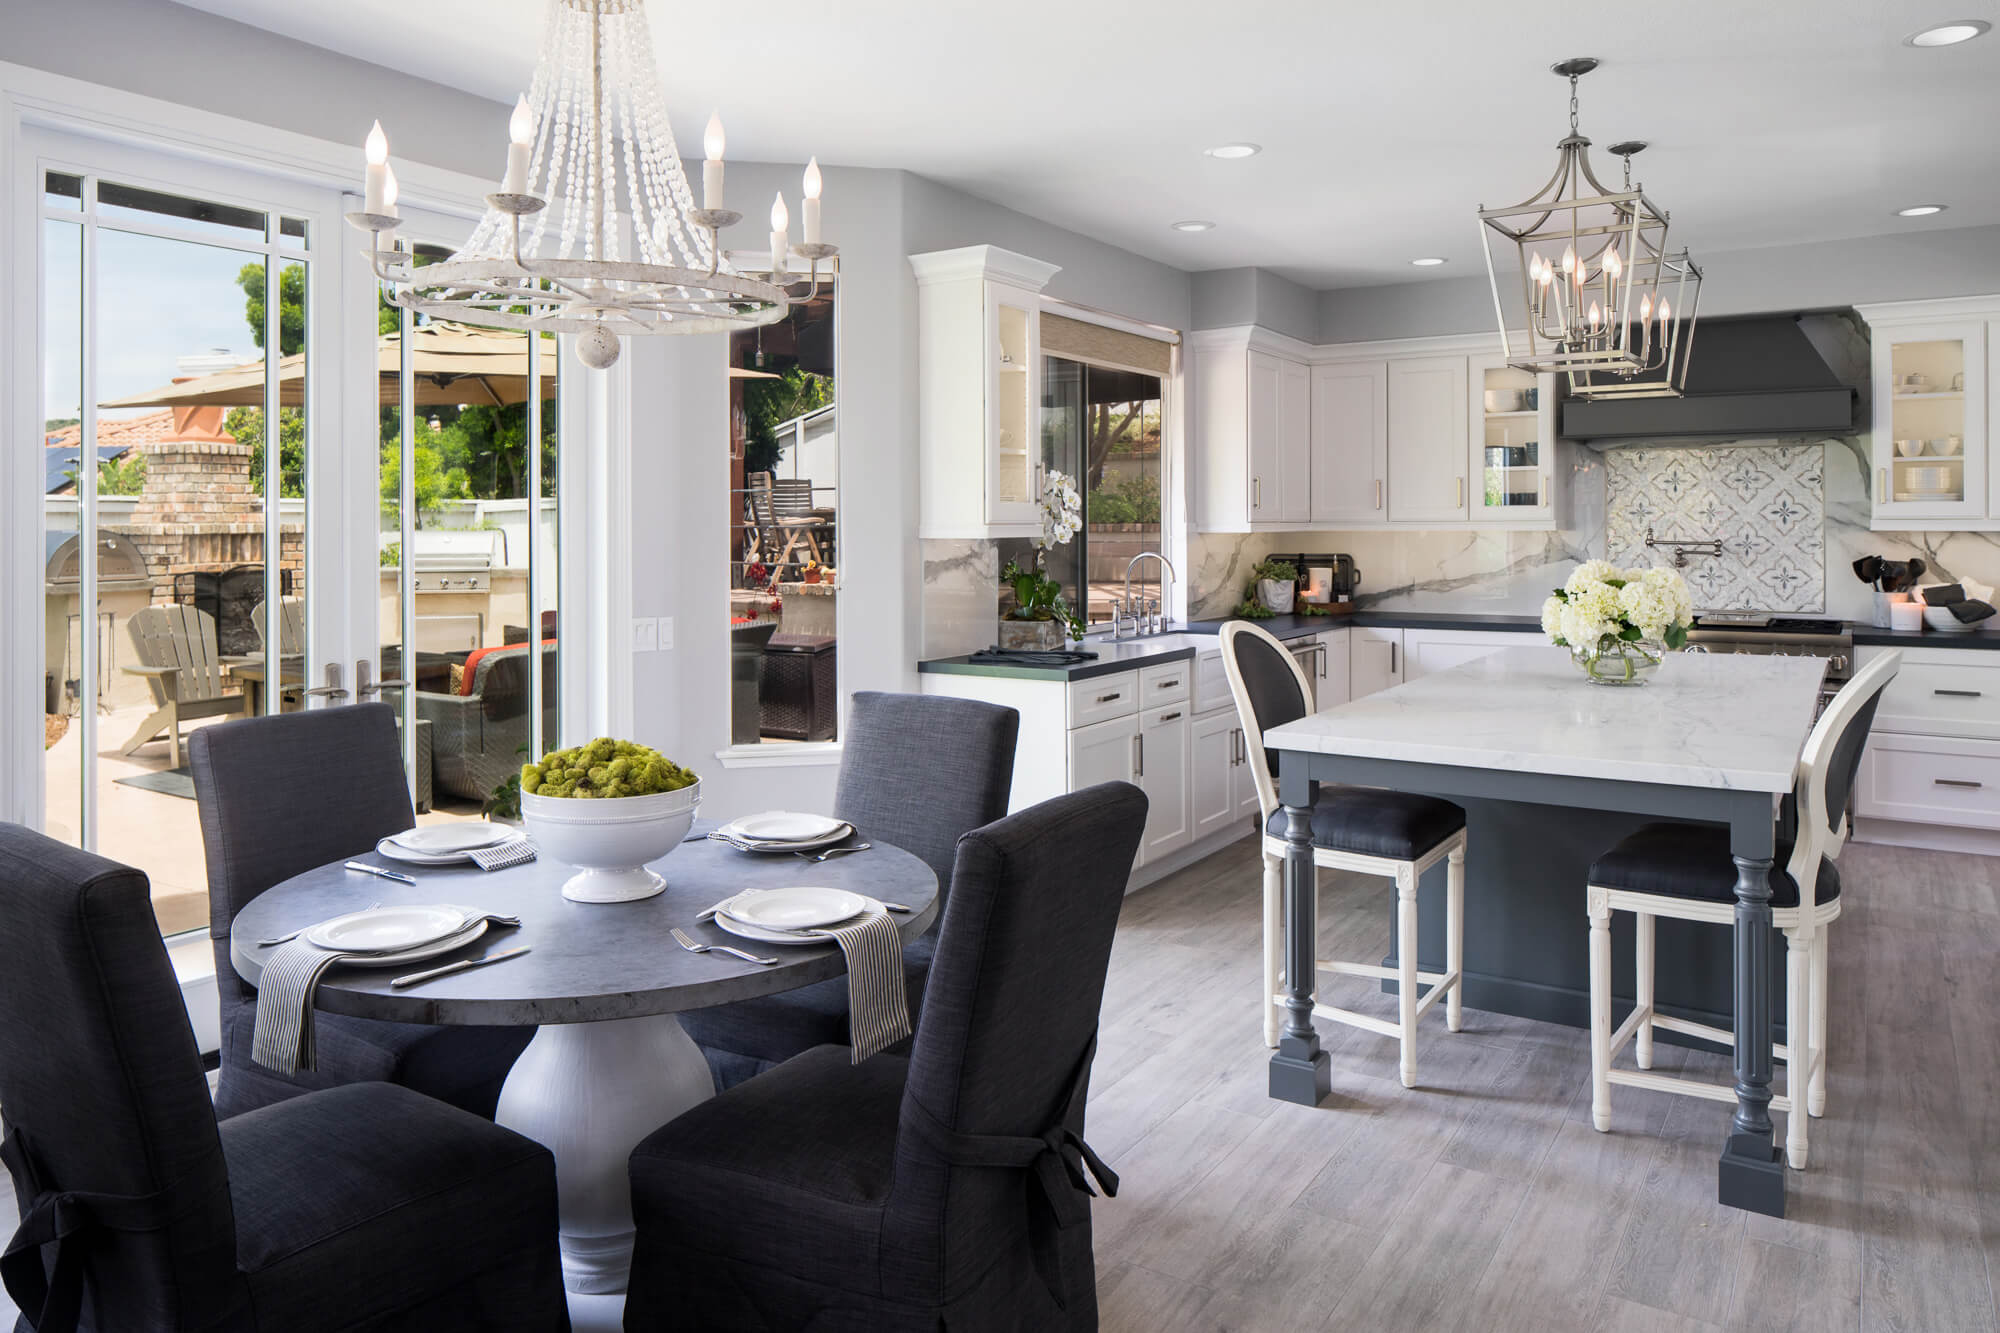 5 Tips For Keeping Remodeling Costs Within Budget